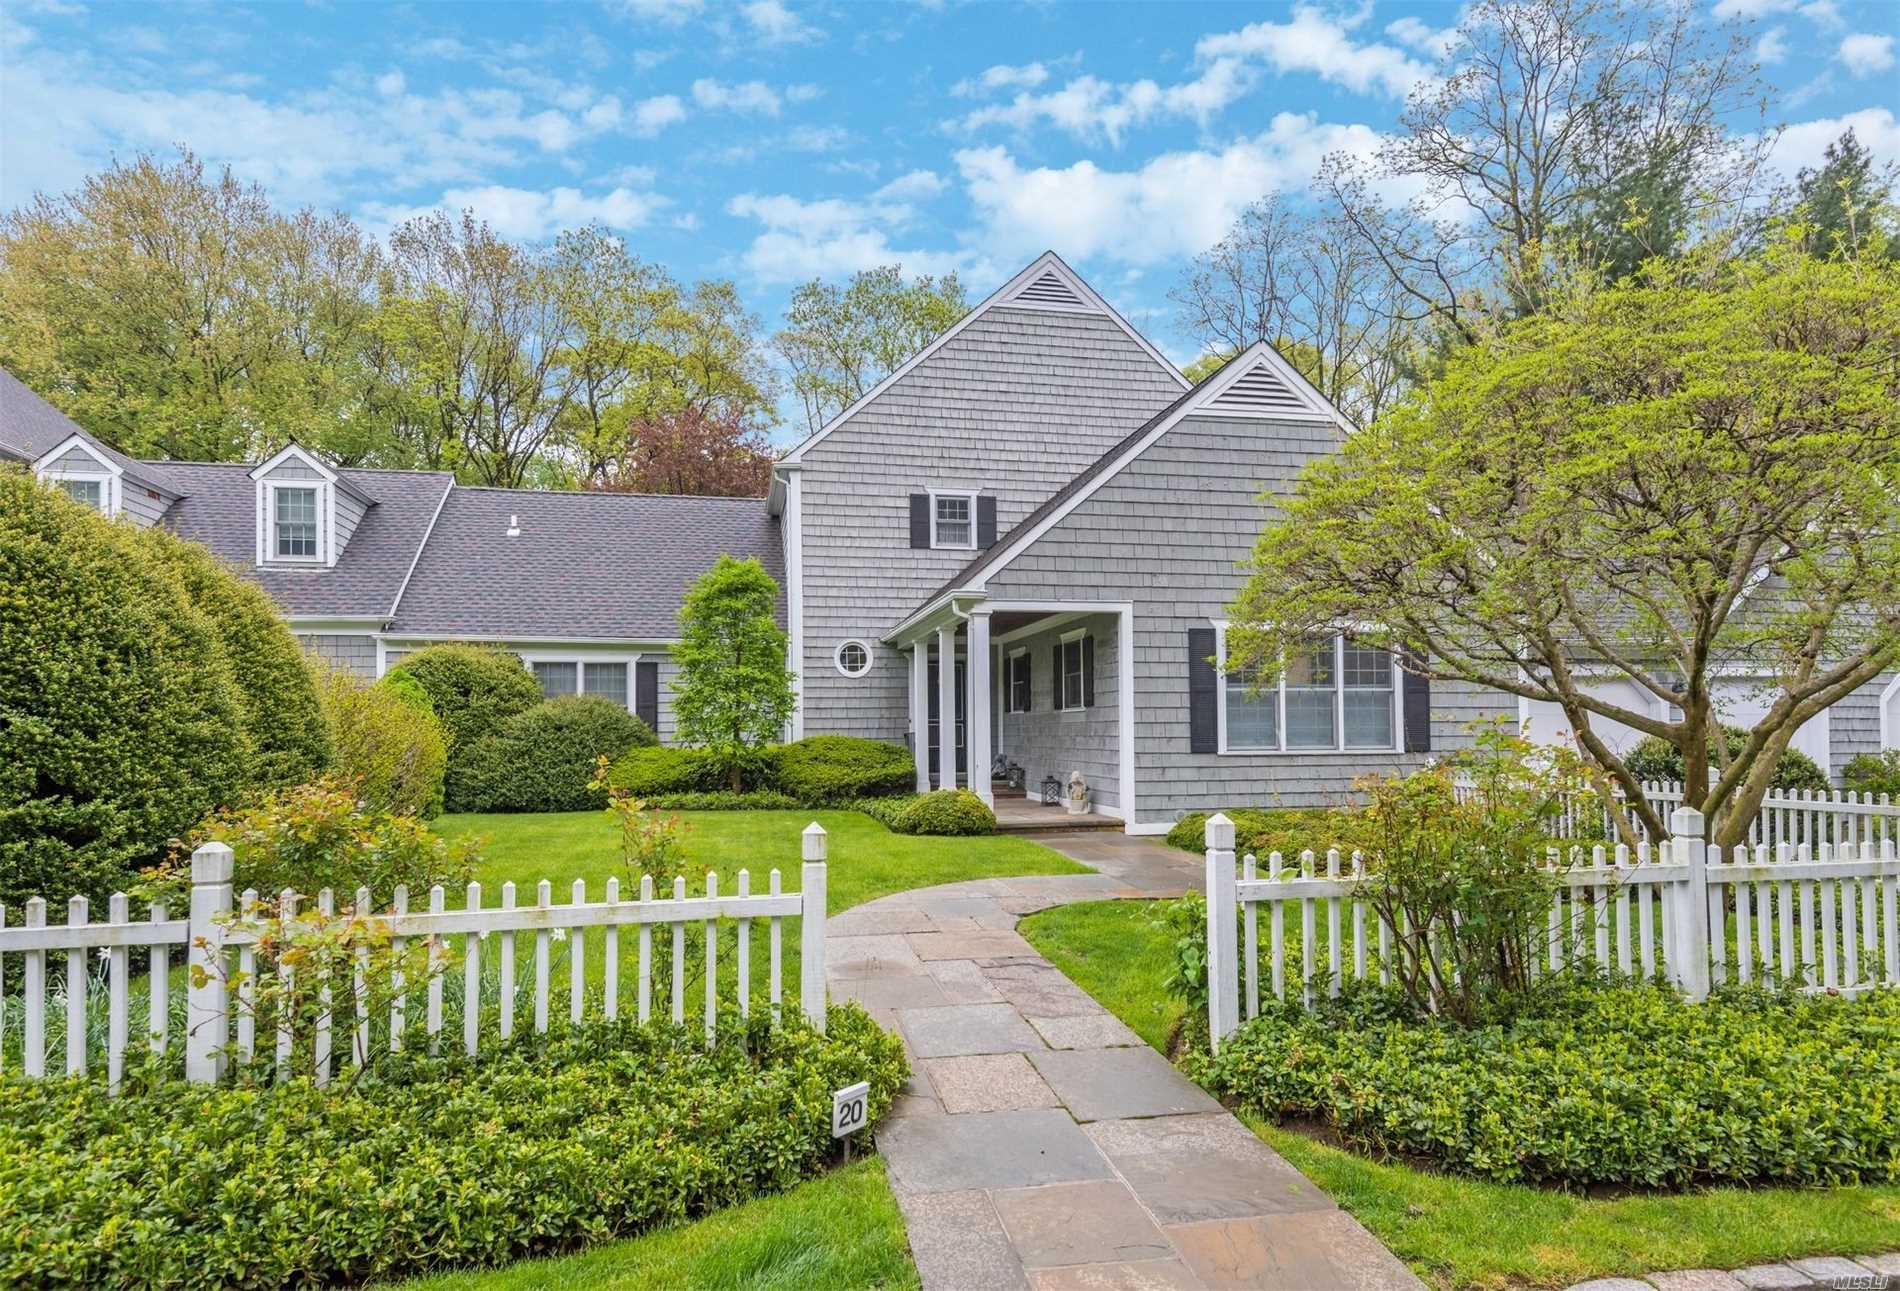 Renovated Nantucket style home with formal gardens, backing a preserve offering a serene and quiet setting. A gracious entrance and elegant entertaining rooms all overlooking wonderful gardens. Features include a new Gourmet Kitchen with walls of cabinetry, center island, calcutta marble countertop & top of the line appliances, service bar area to match, 2 Master Ensuite Bedrooms with new baths & spacious outfitted closets, 20 Kw Generator, 2013 Hot H20 Htr & Furnace, Updated roof, HOA